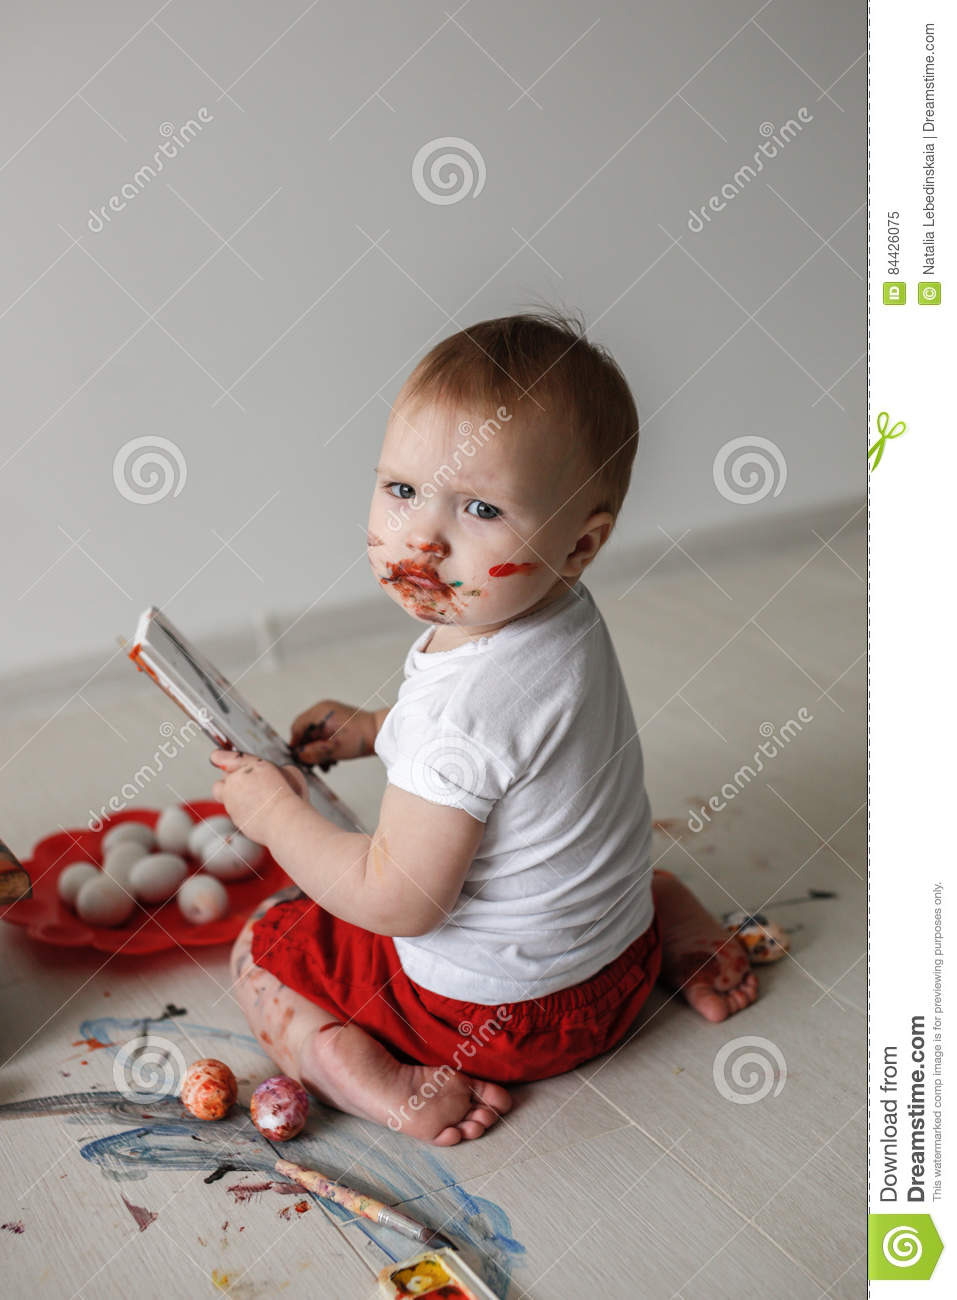 Download Smutty Kid With Watercolor Paints Stock Image Image Of Attractive Look 84426075